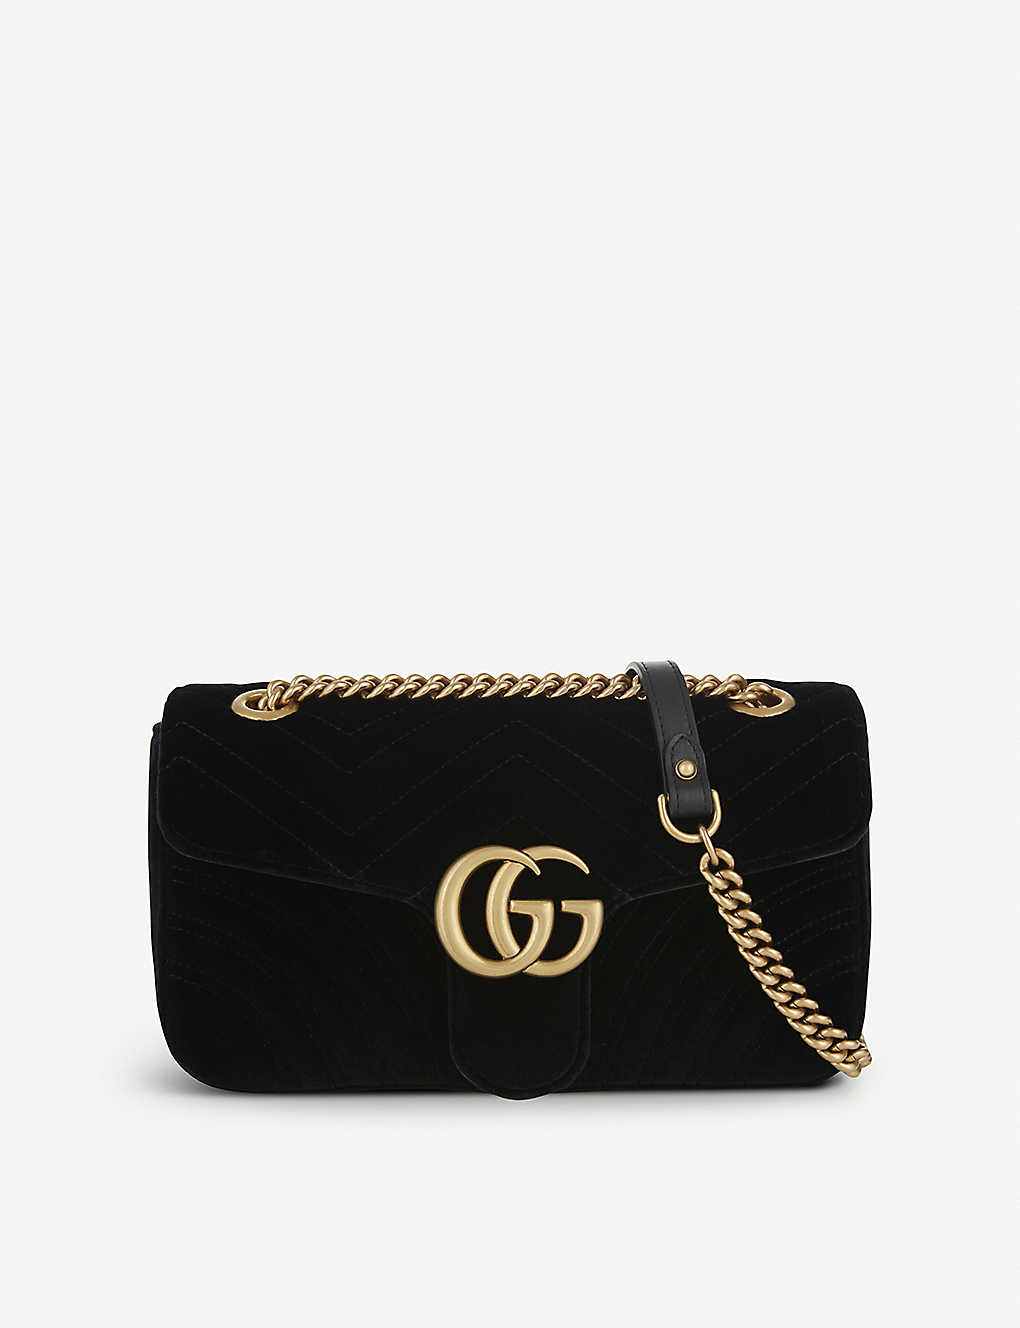 78697a4ea19 GUCCI - Marmont small velvet shoulder bag